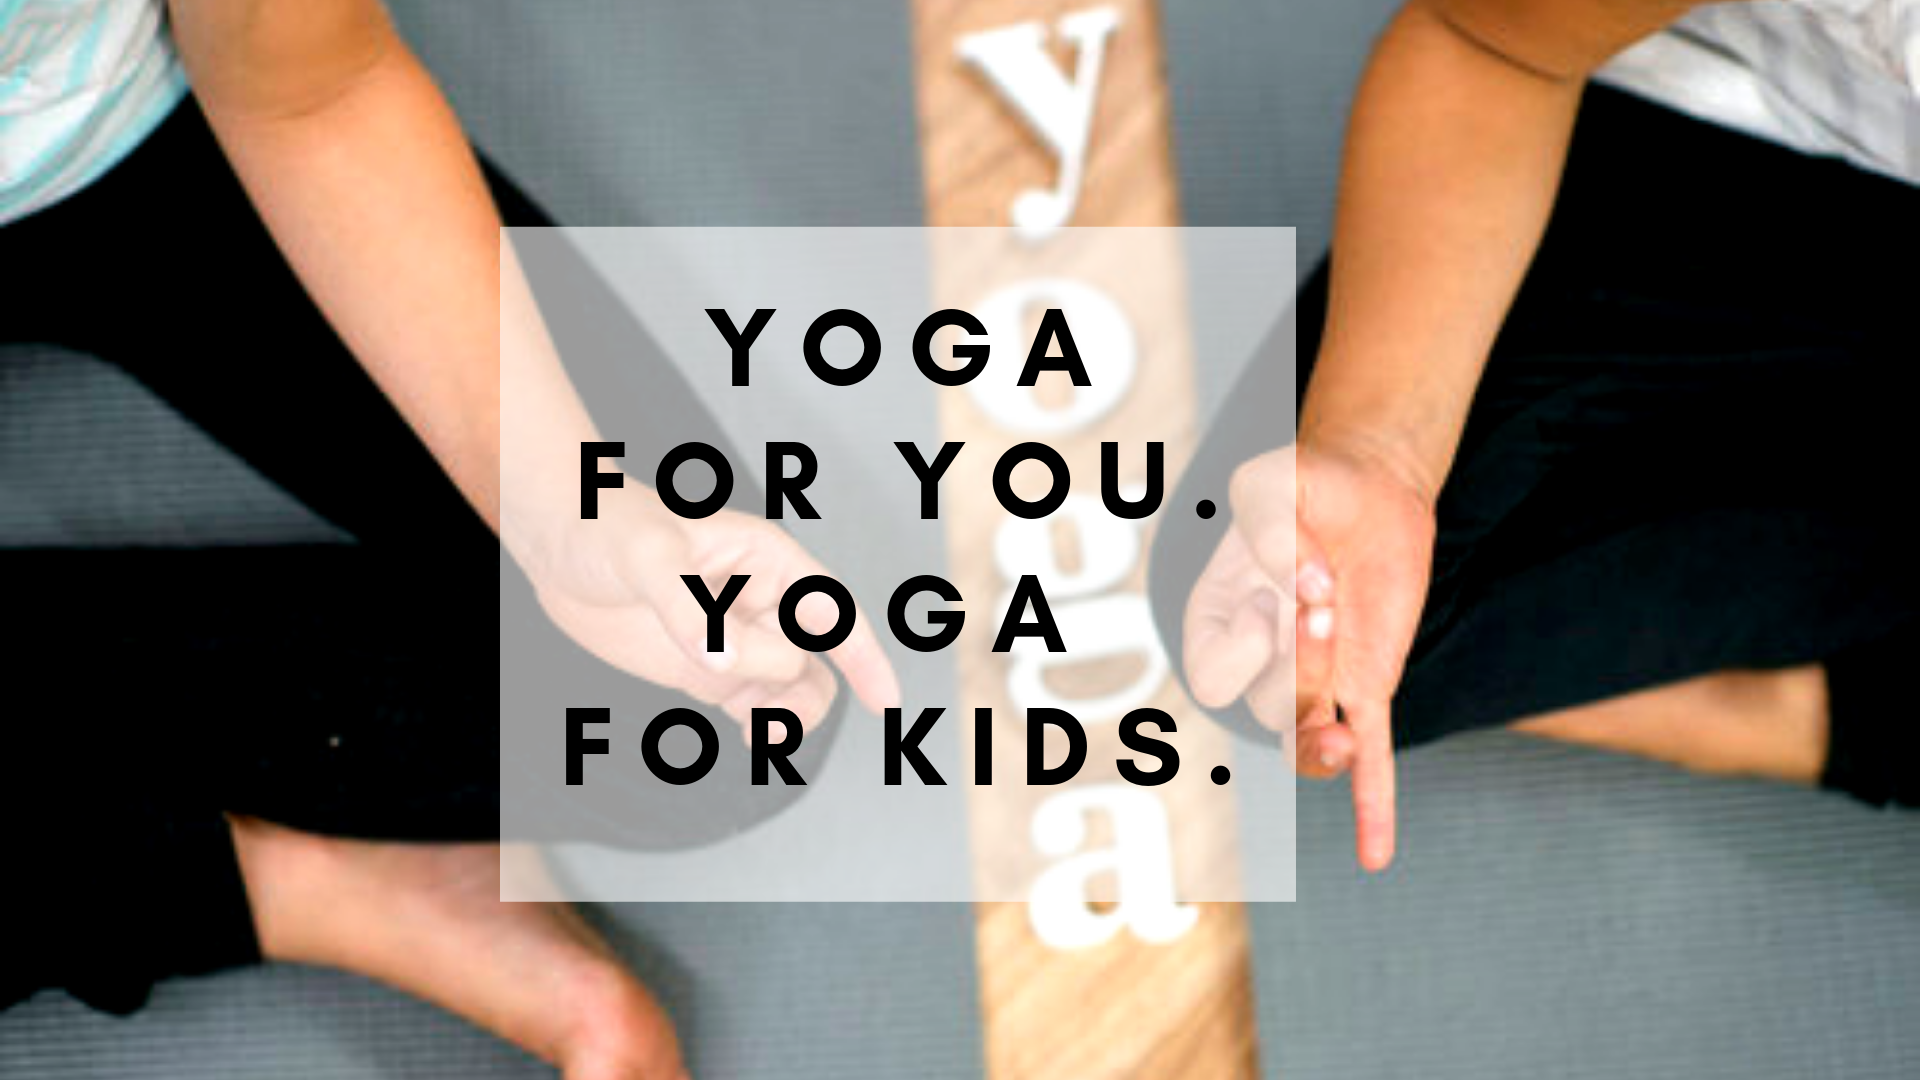 Butterfly Kids Yoga_Yoga for You.Yoga for Kids.png